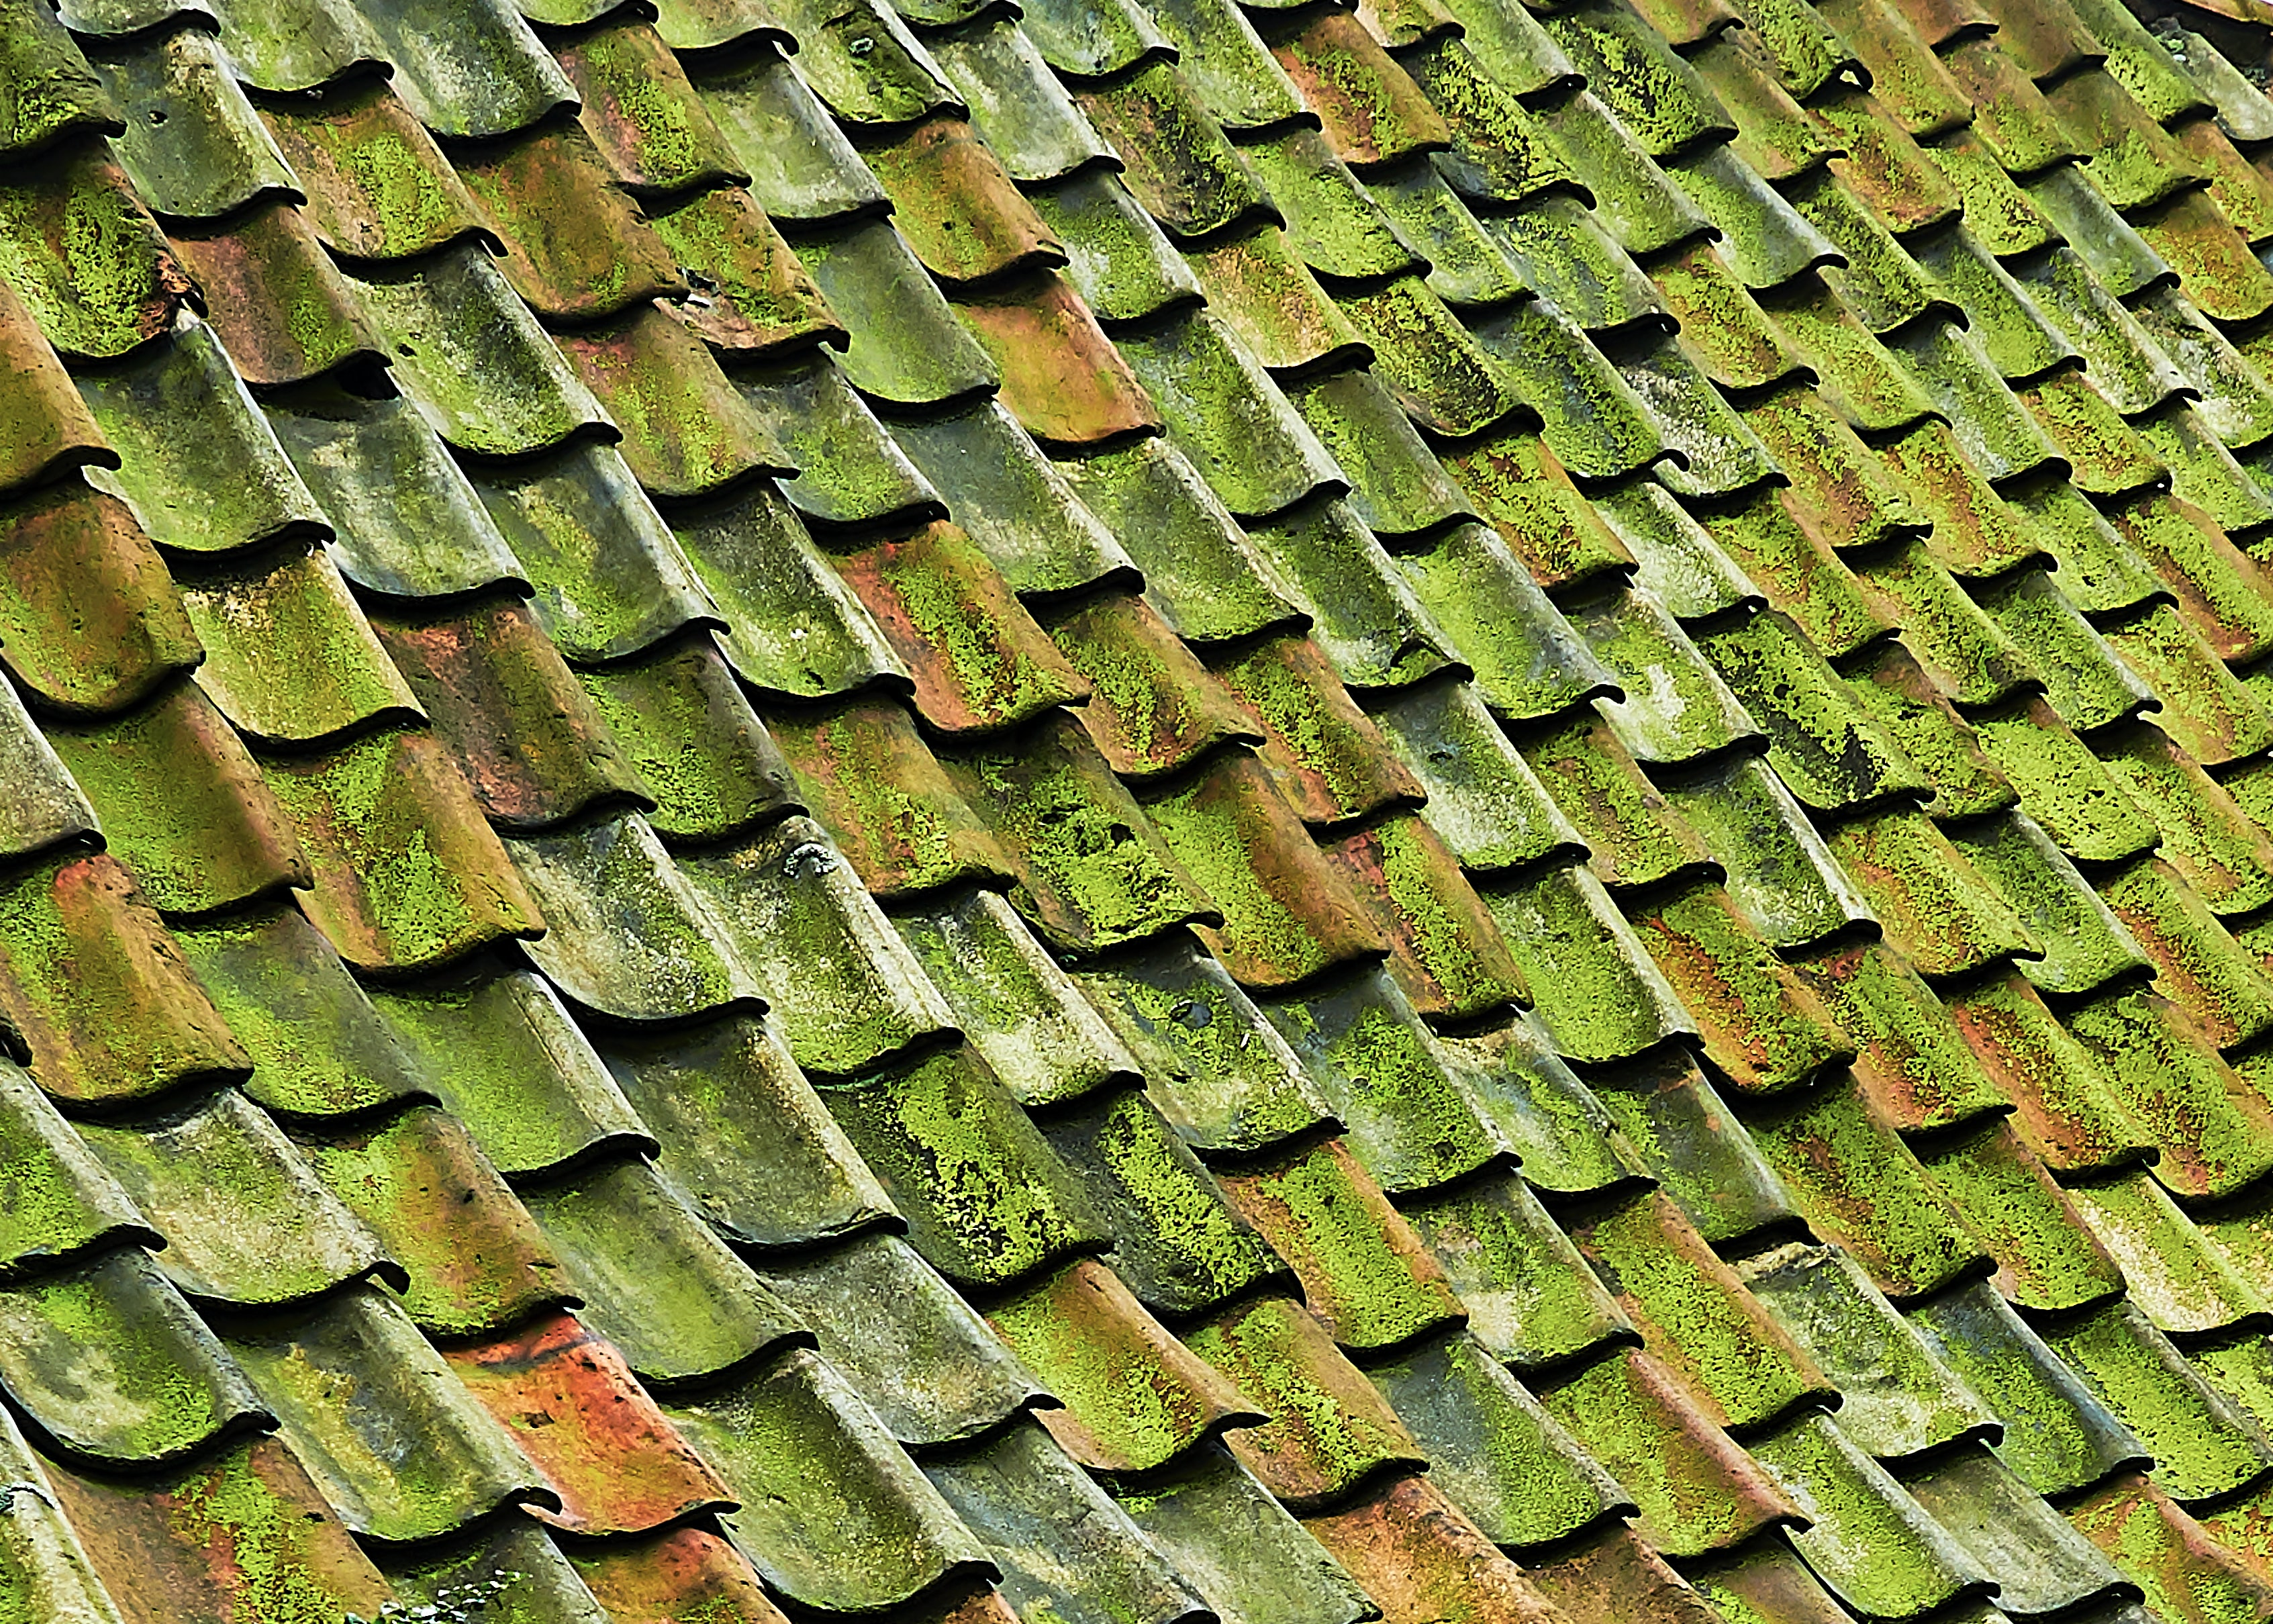 close-up photo of green shingle roof